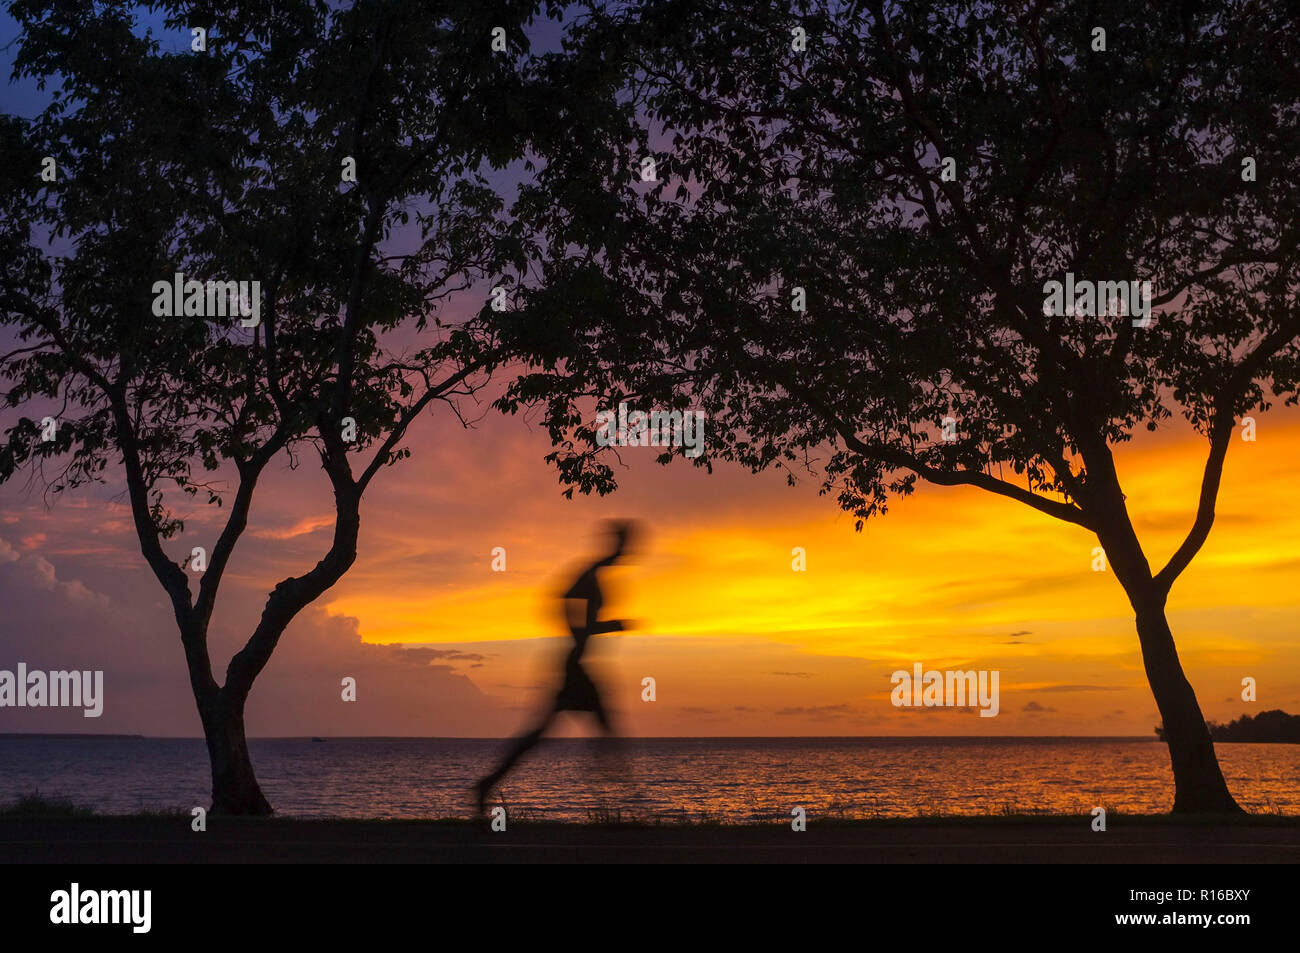 Silhouette of a man jogging between trees against a beach sunset. Stock Photo